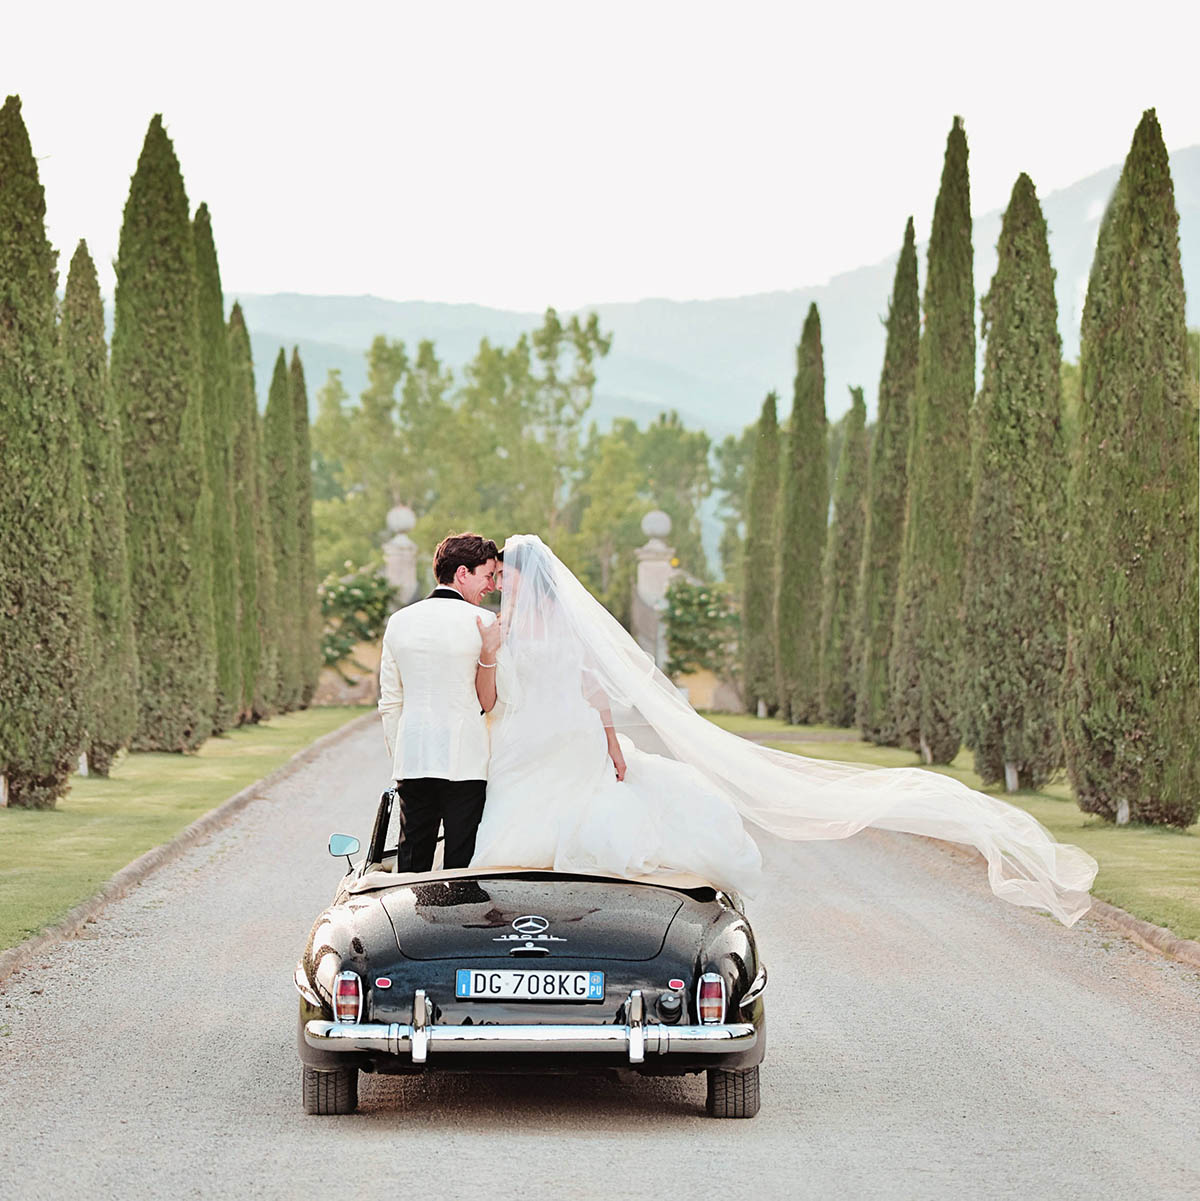 best-luxury-wedding-planner-Tuscany-Italy-with-convertible-vintage-car-and-cypress-trees